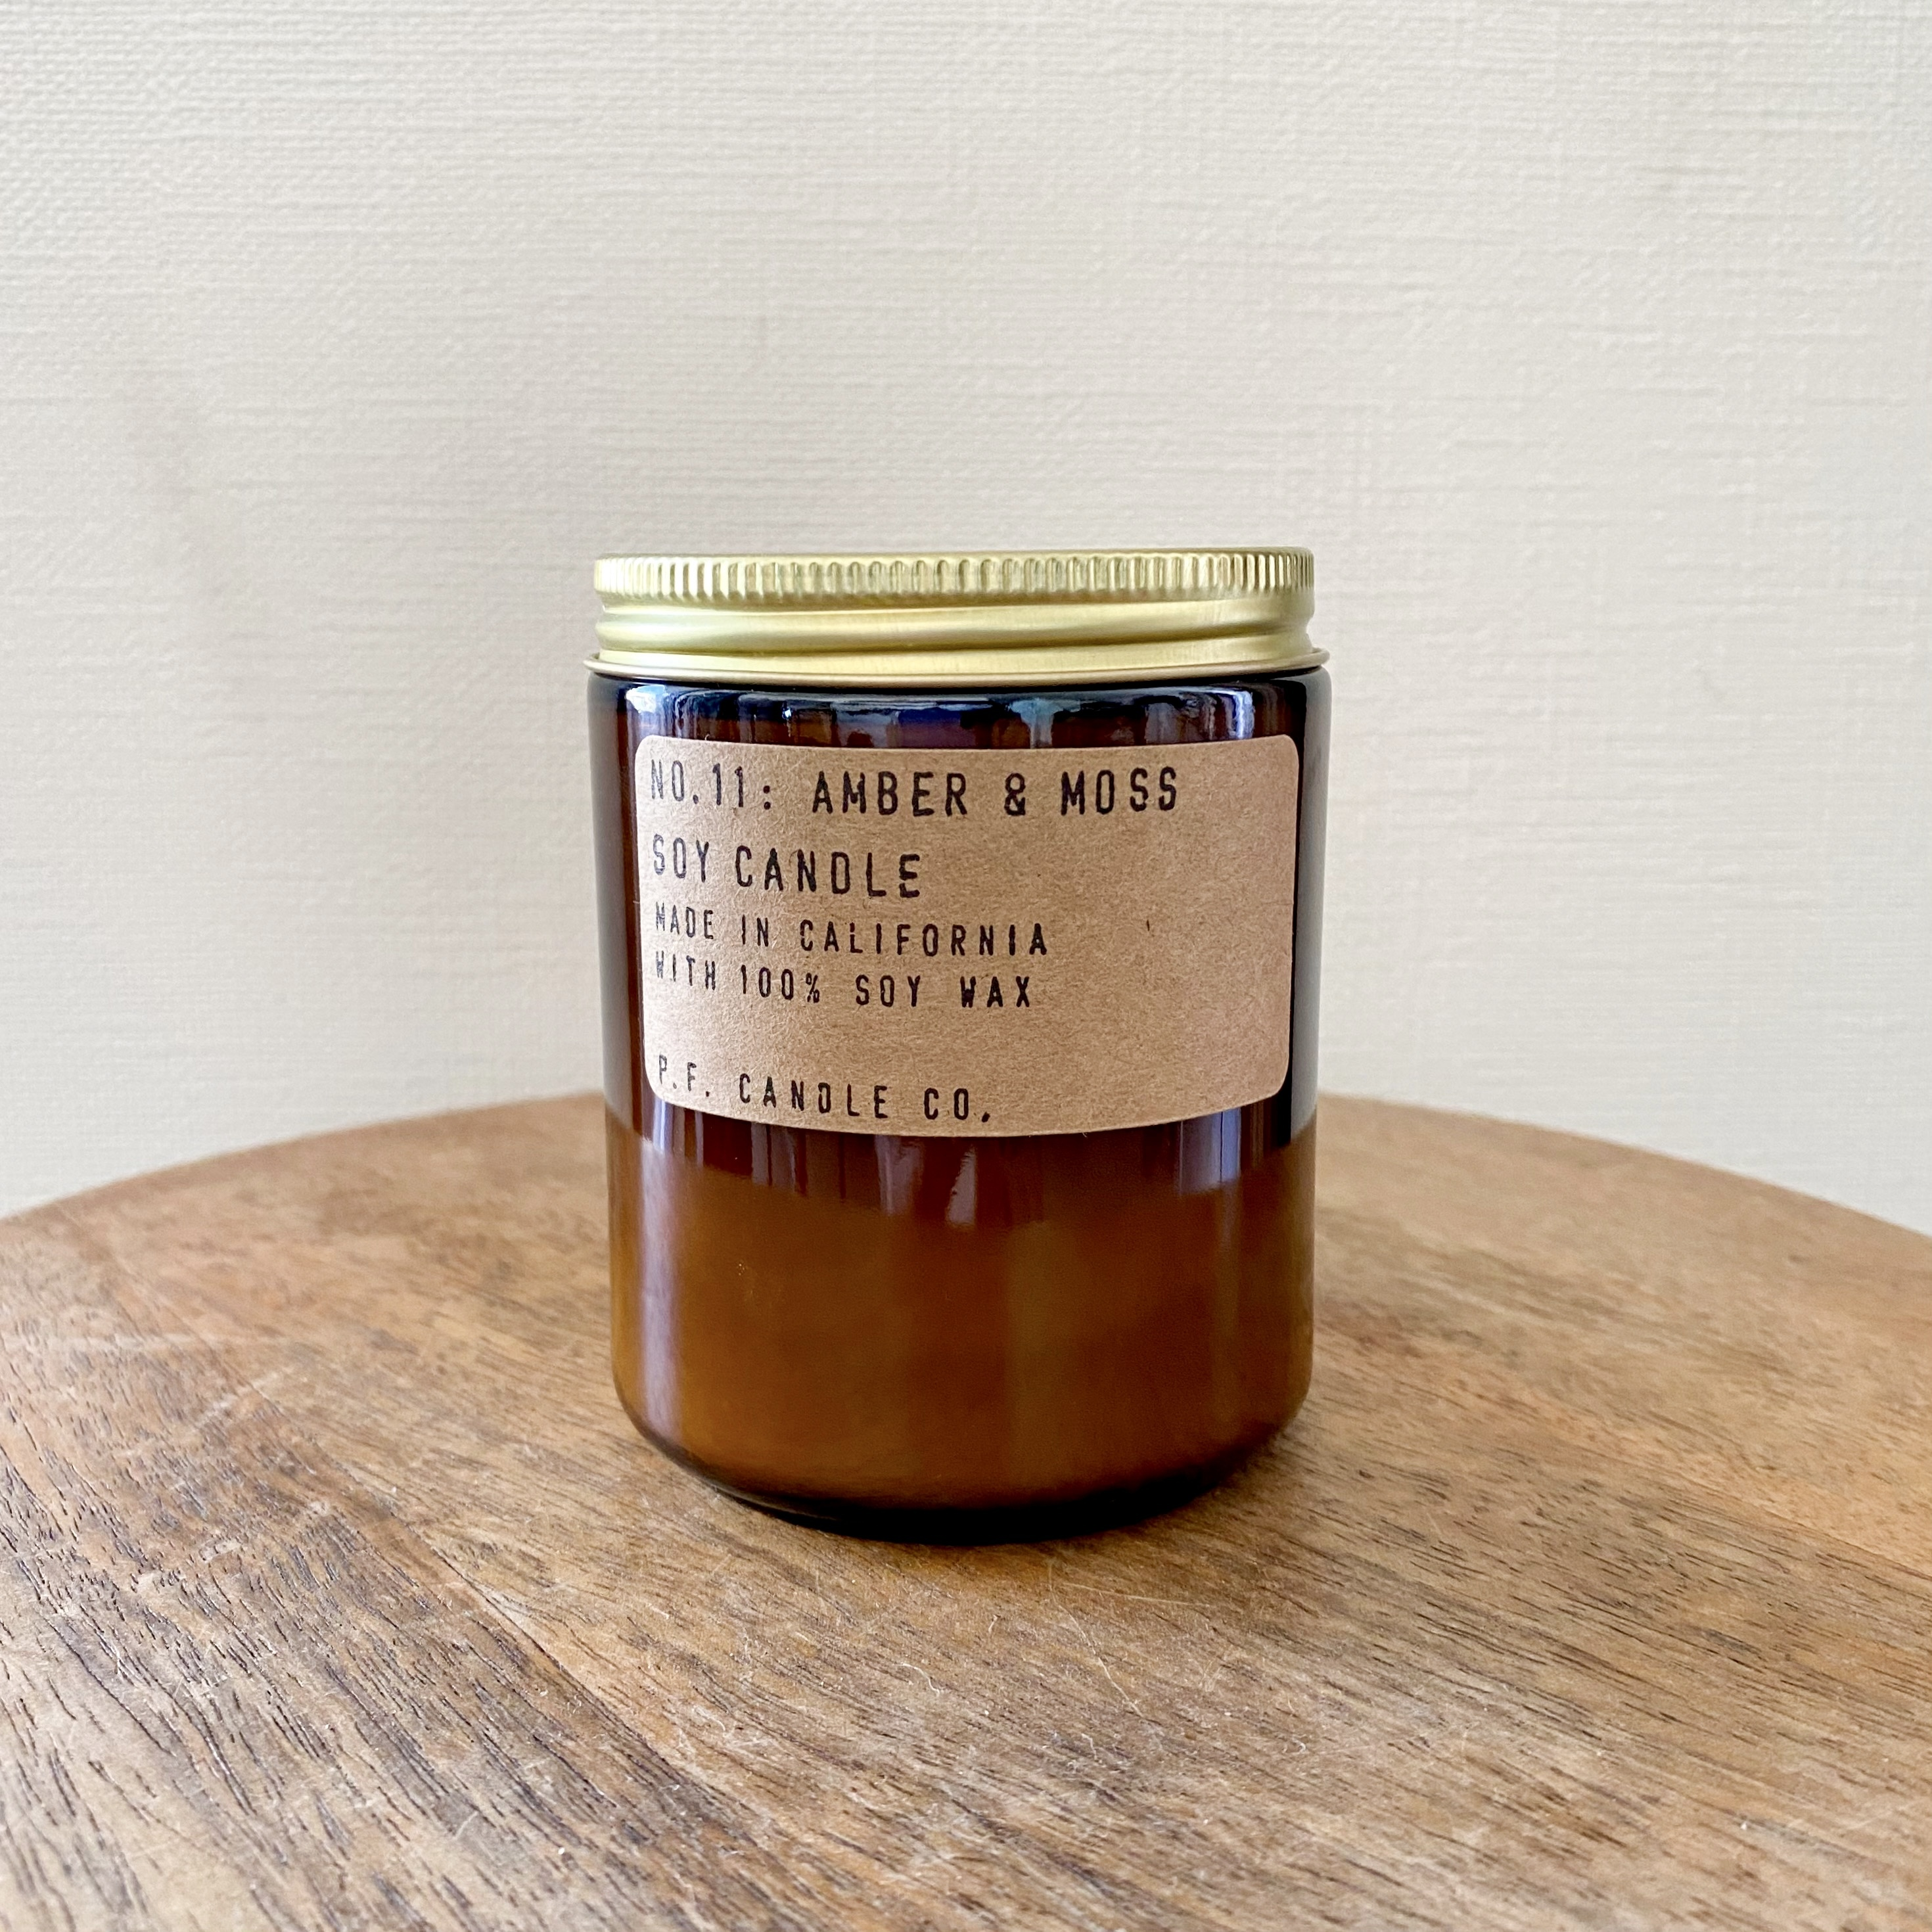 P.F.CANDLE 7.2oz Soy Wax Candle_Amber & Moss